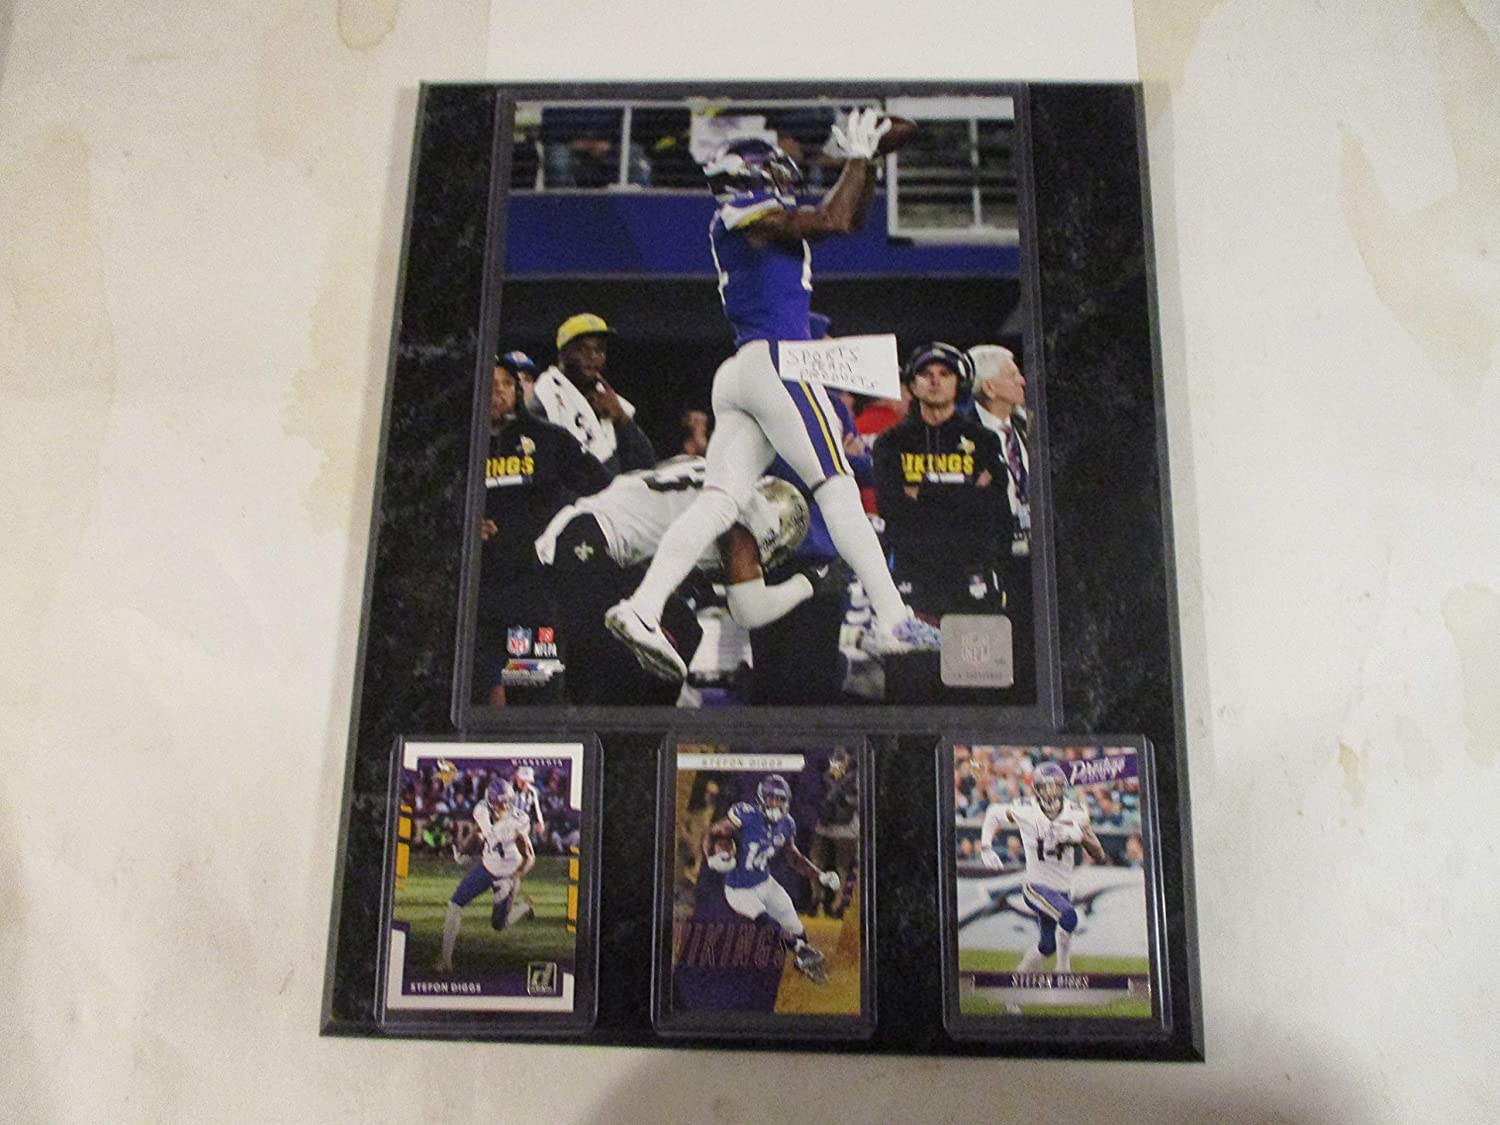 STEFON DIGGS MINNESOTA VIKINGS MIRACLE CATCH PHOTO PLUS 3 CARDS MOUNTED ON A 12' X 15' BLACK MARBLE PLAQUE